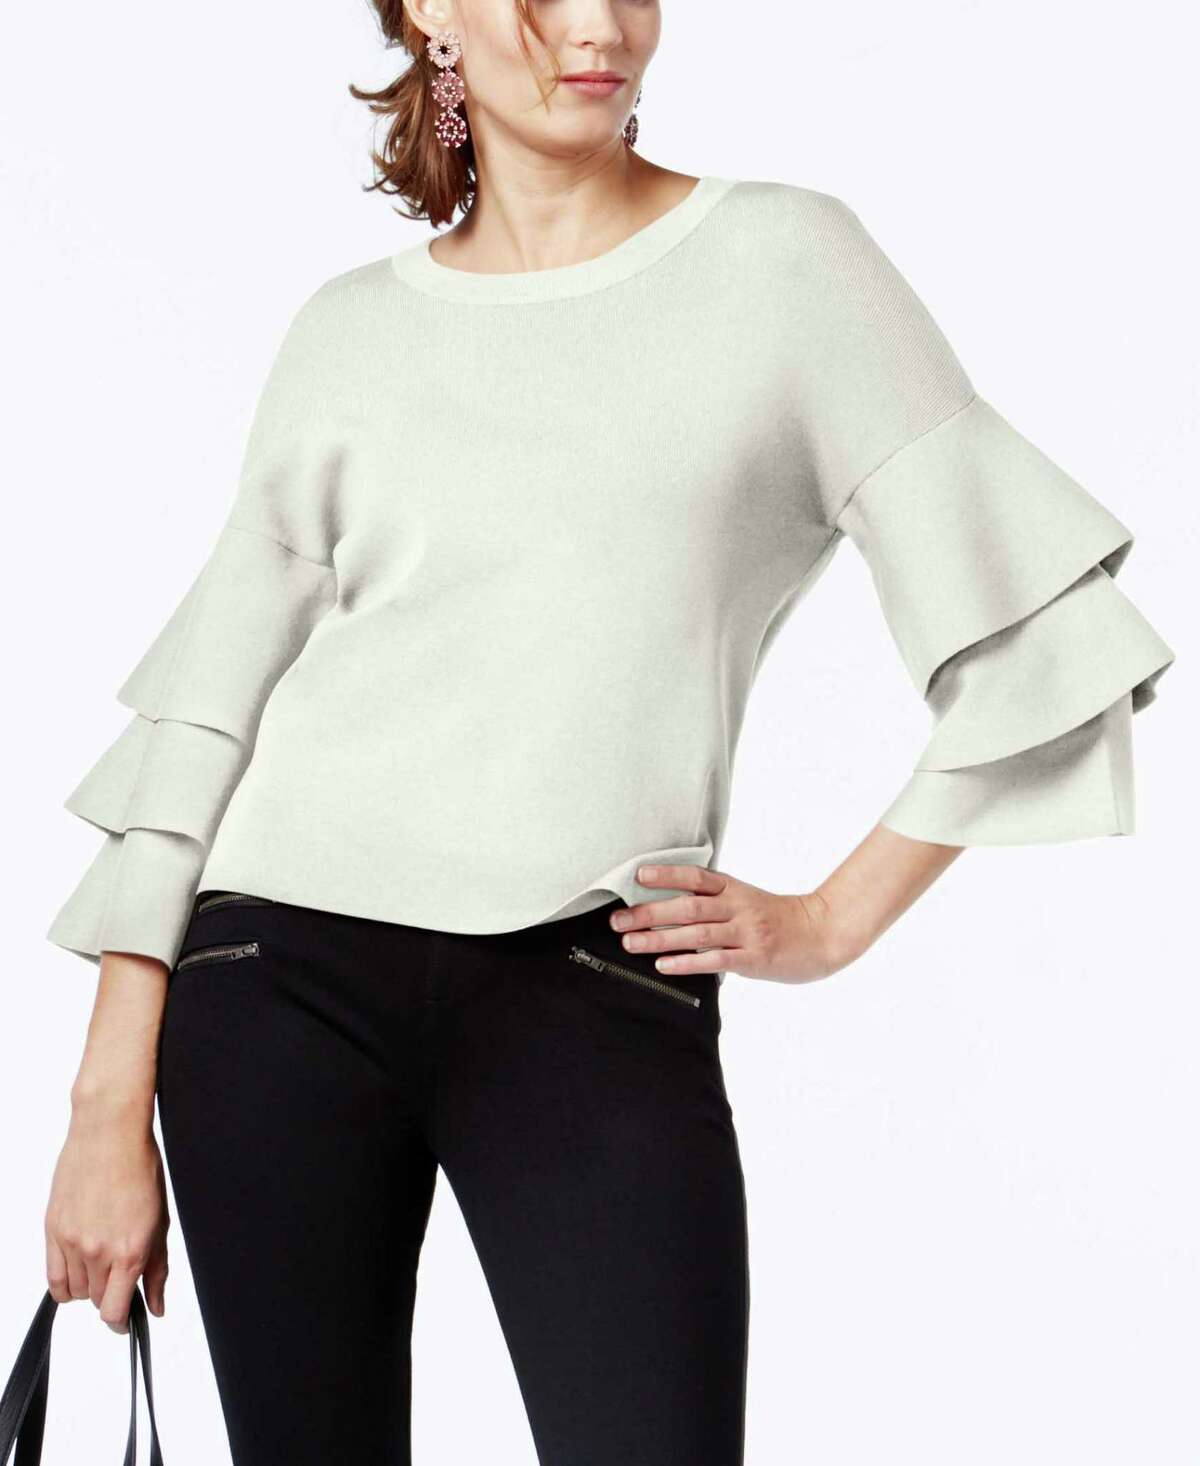 WINTER WHITE: INC International Concepts Tiered Sleeve Sweater, $79.50, at Macy's